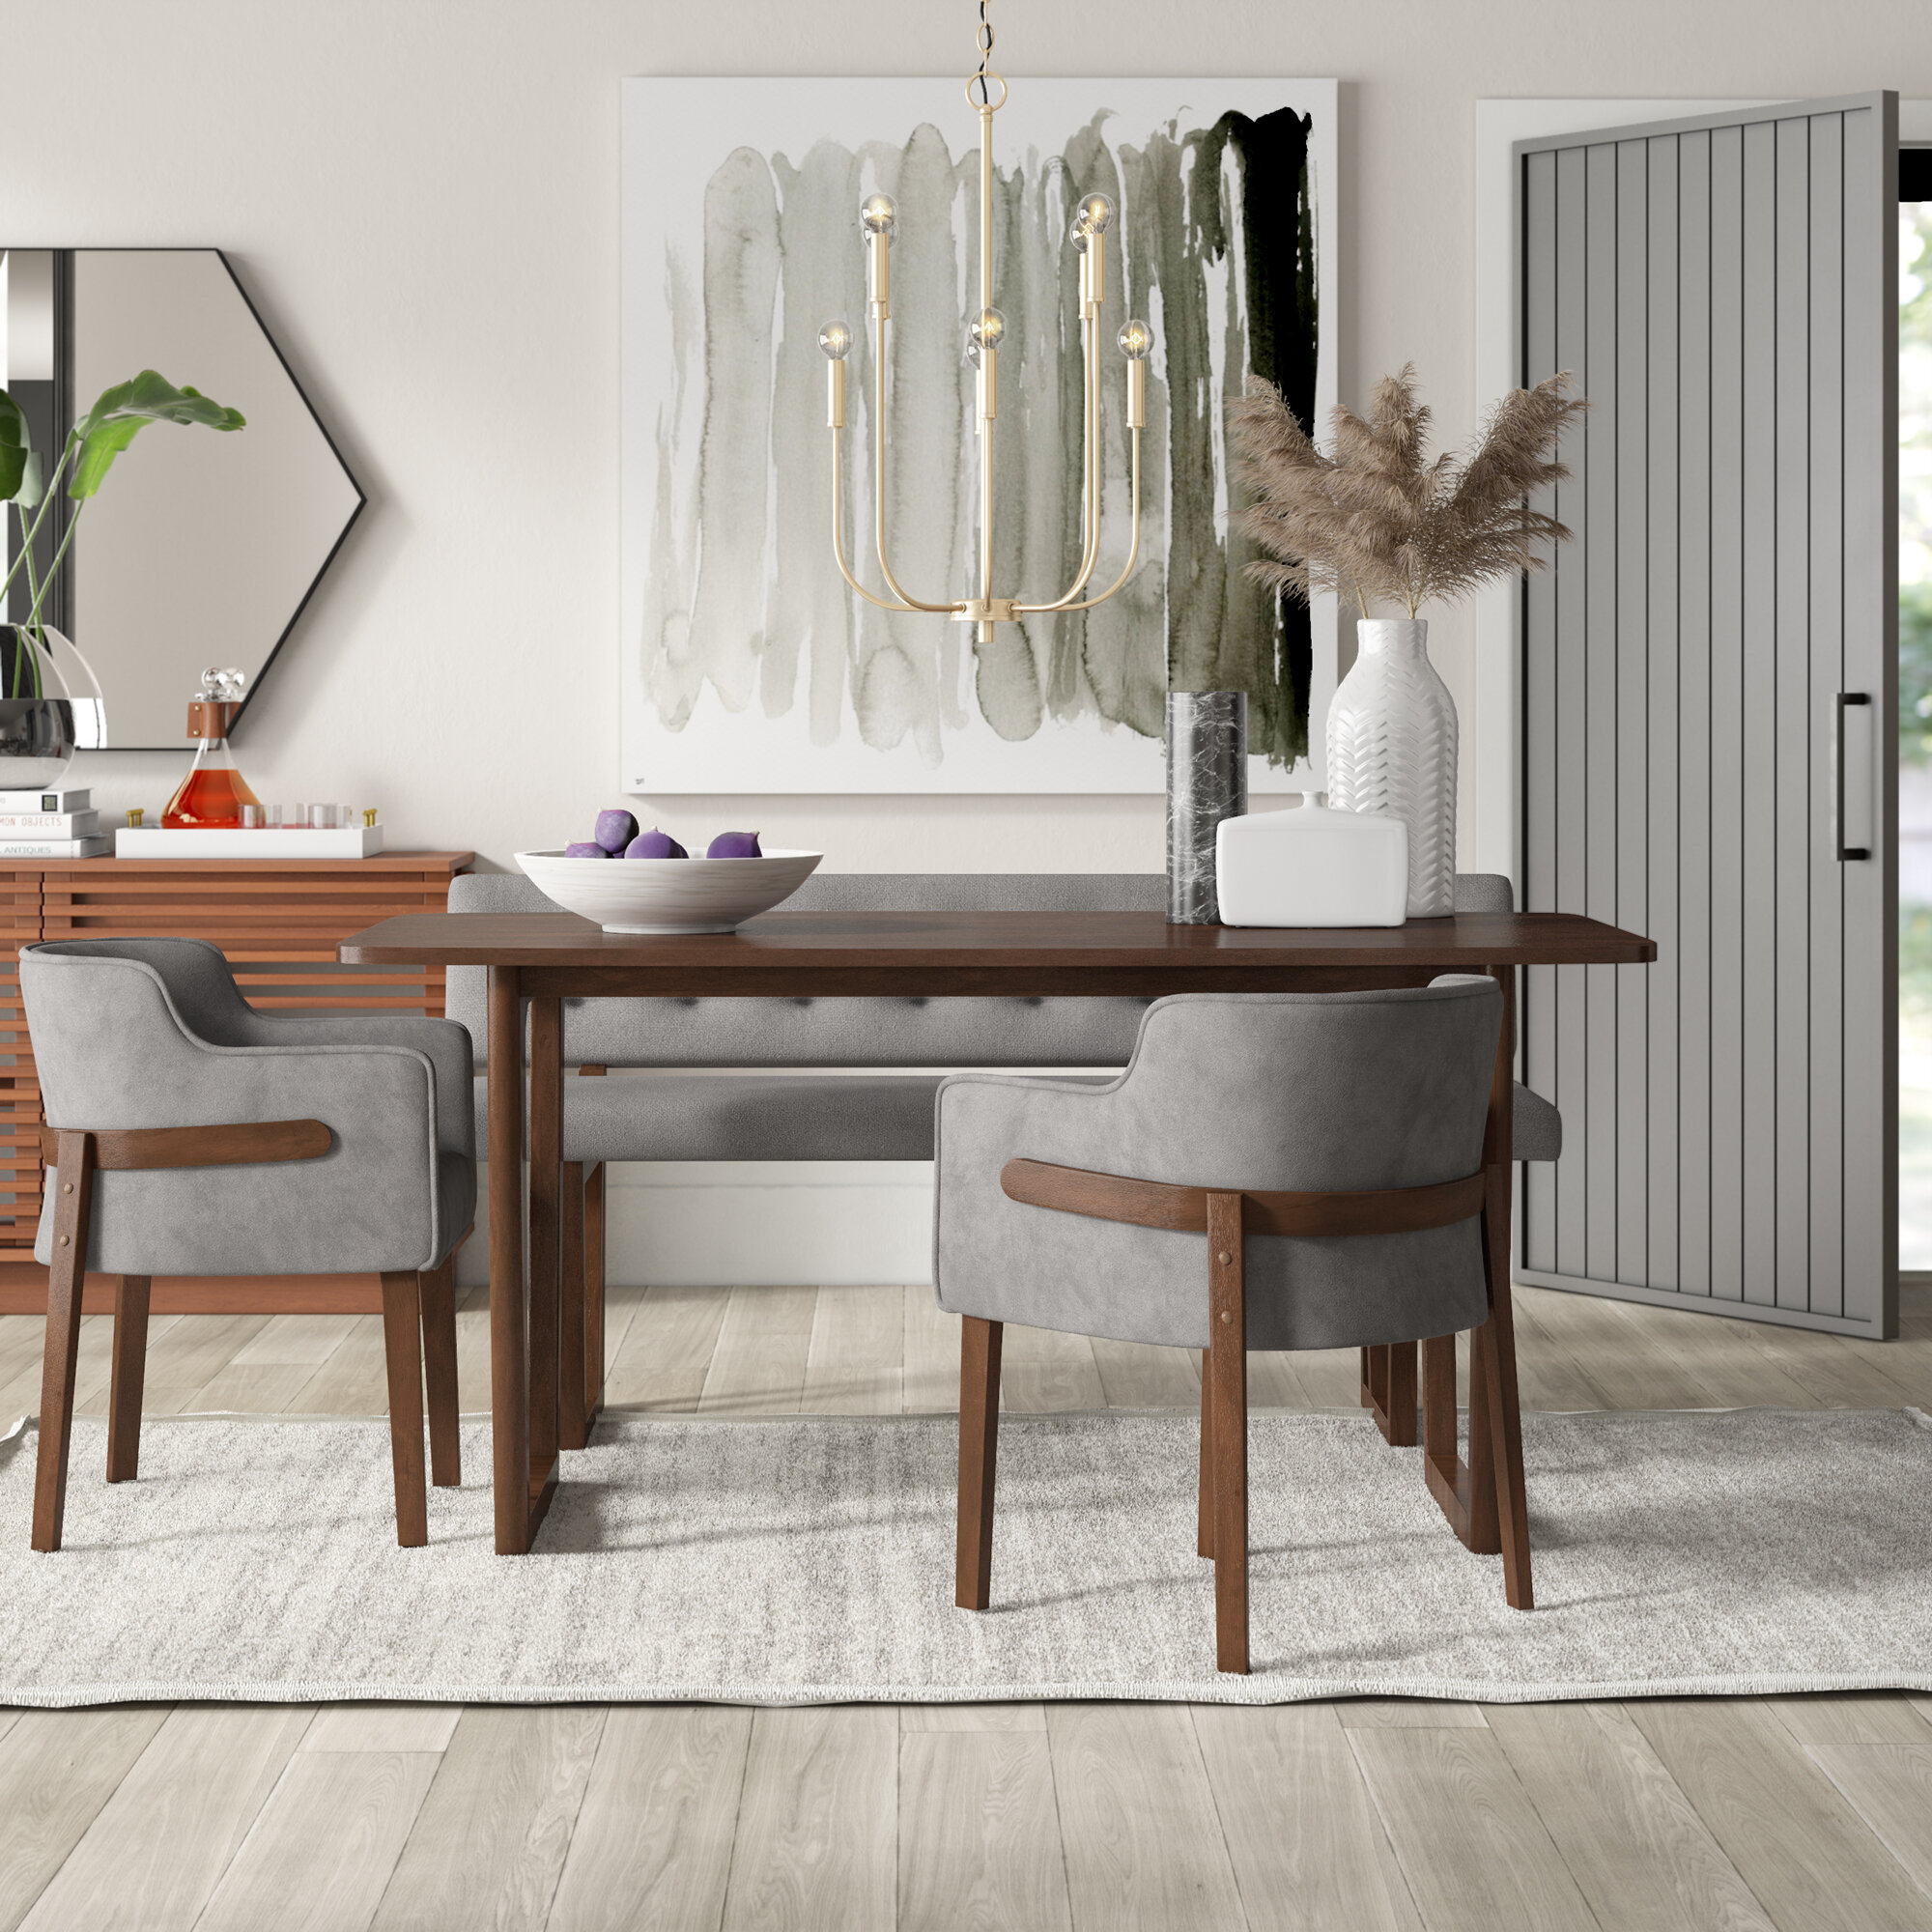 Mukai 4 Piece Dining Set For Most Current Mukai 5 Piece Dining Sets (View 3 of 20)